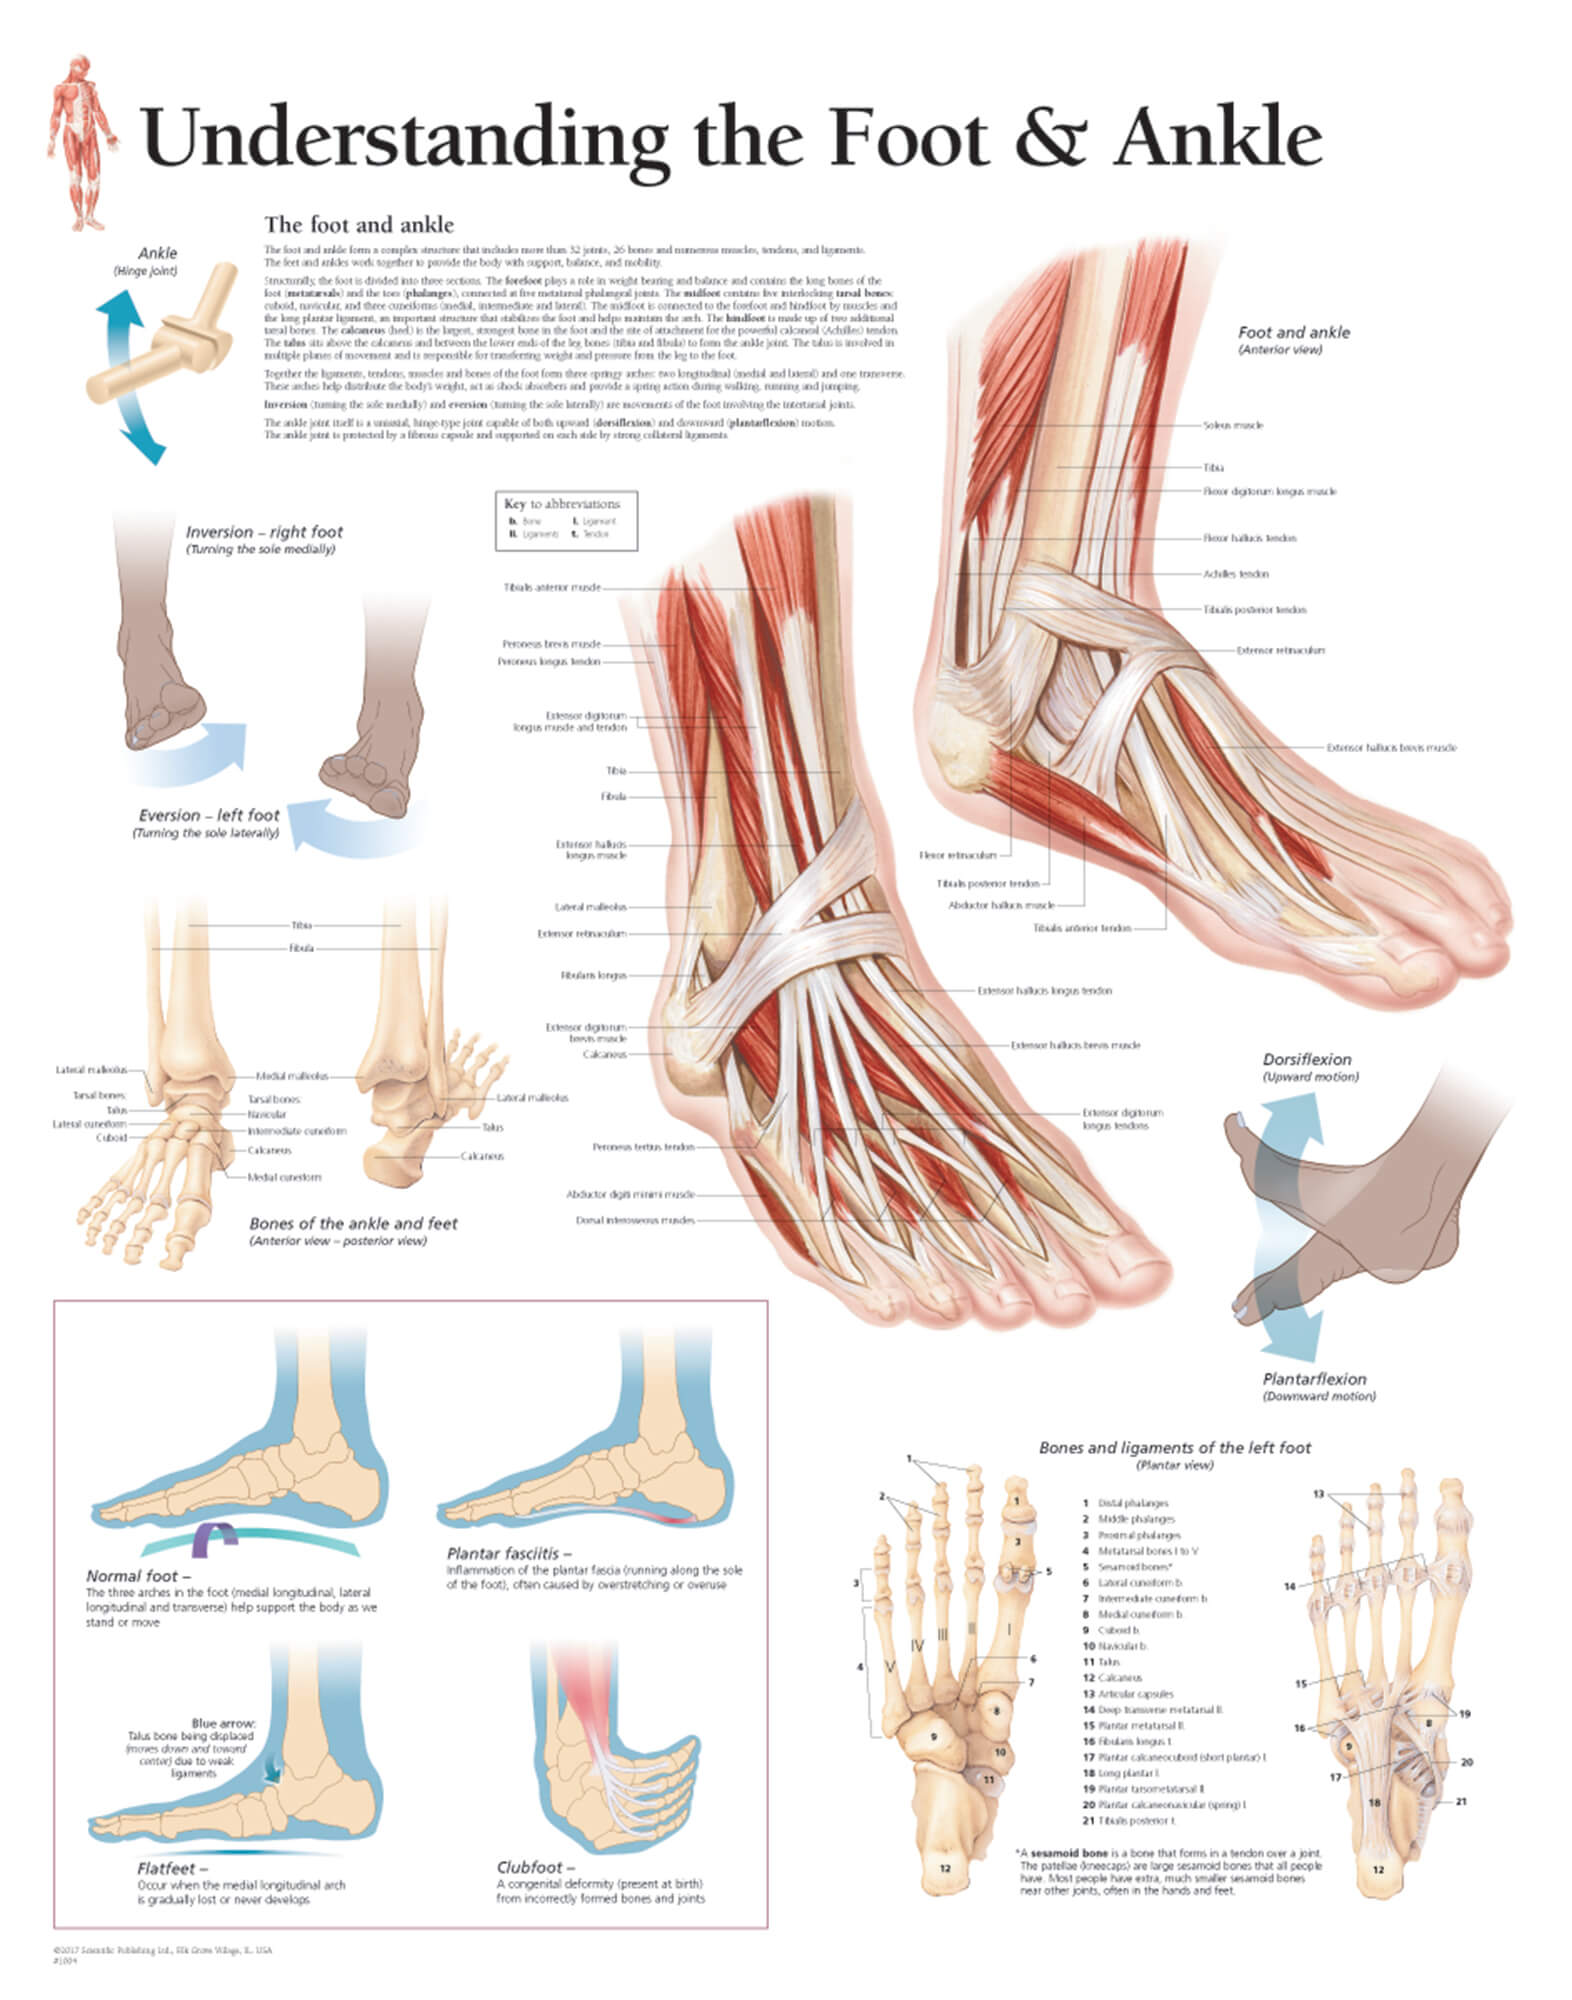 Understanding the Foot and Ankle 1004 – Anatomical Parts & Charts